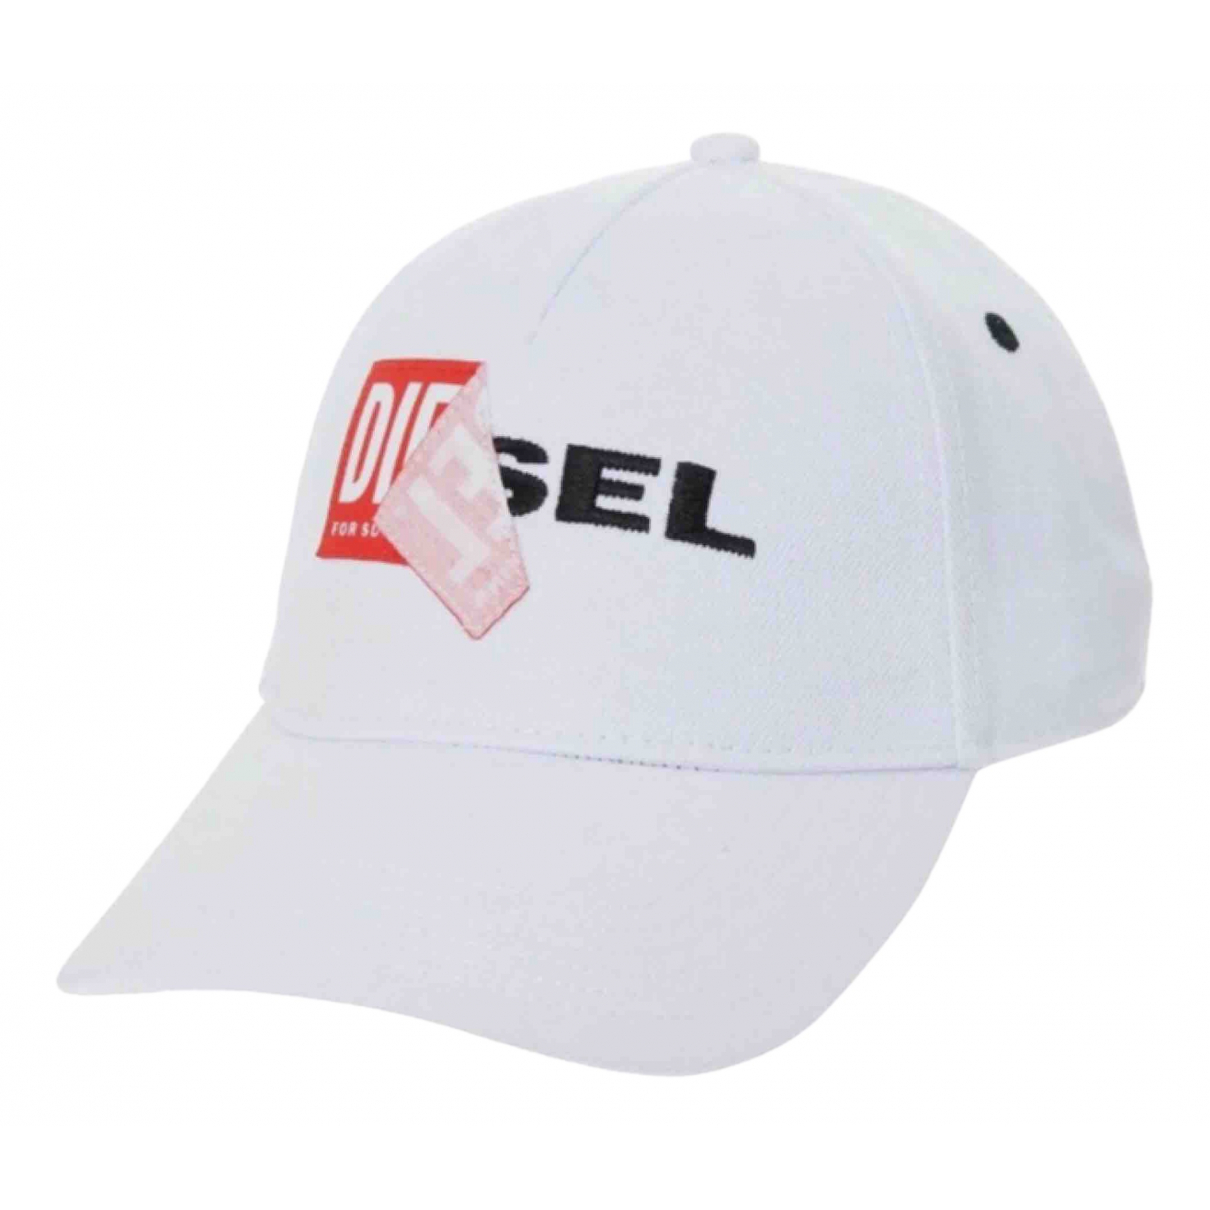 Diesel \N White Cotton hat for Women M International